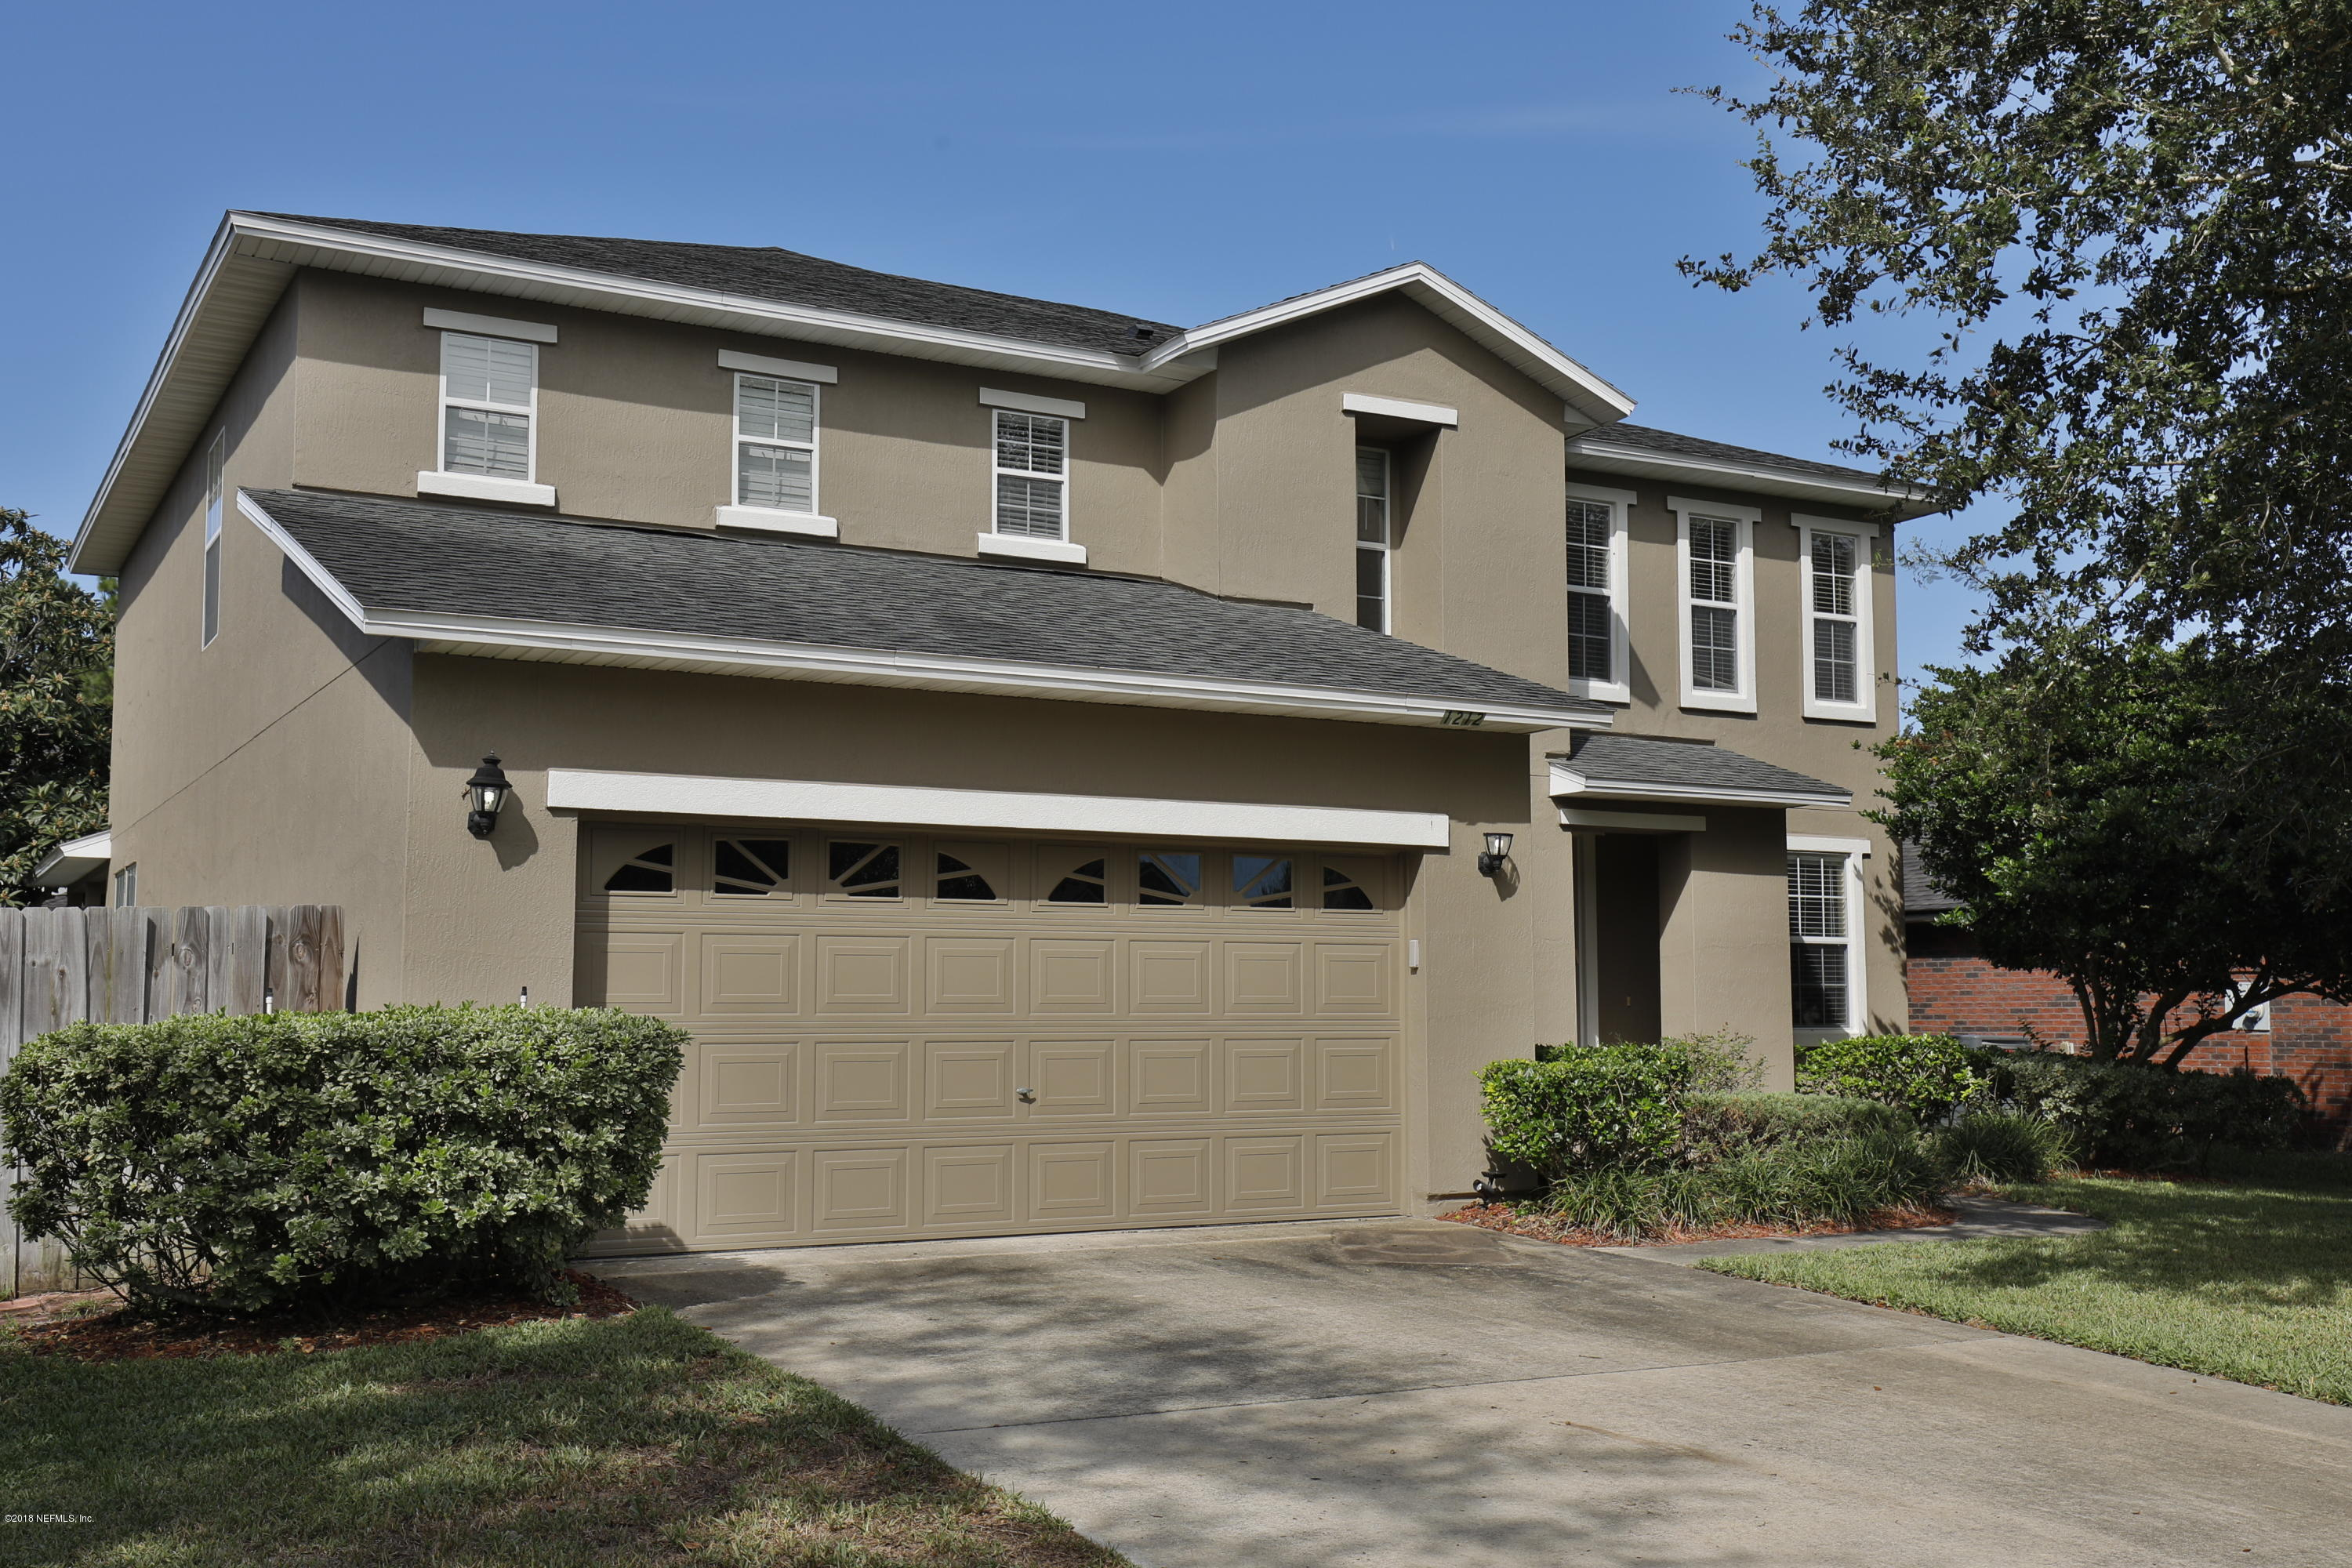 1212 BELHAVEN, PONTE VEDRA, FLORIDA 32081, 4 Bedrooms Bedrooms, ,3 BathroomsBathrooms,Residential - single family,For sale,BELHAVEN,965494